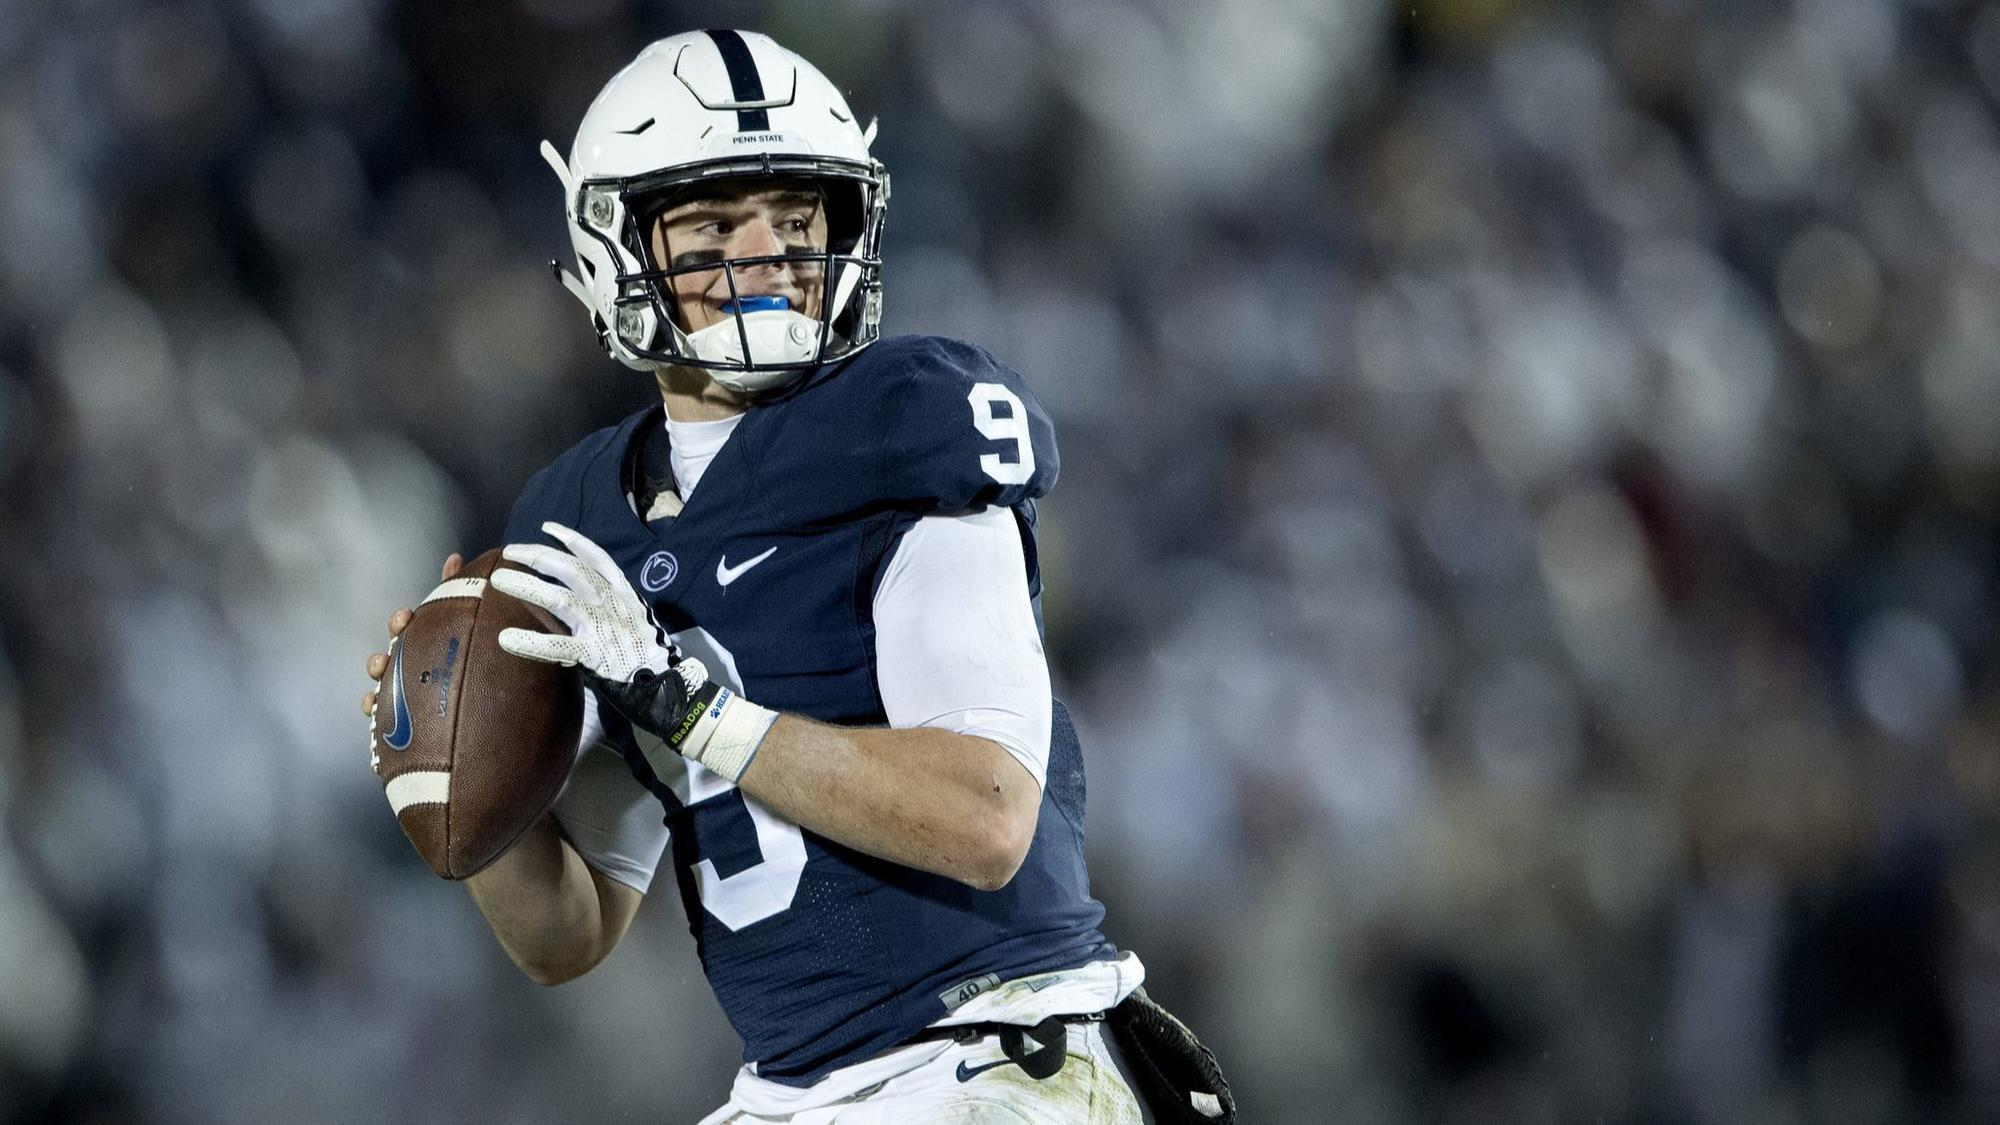 Os-sp-college-football-rankings-penn-state-0815